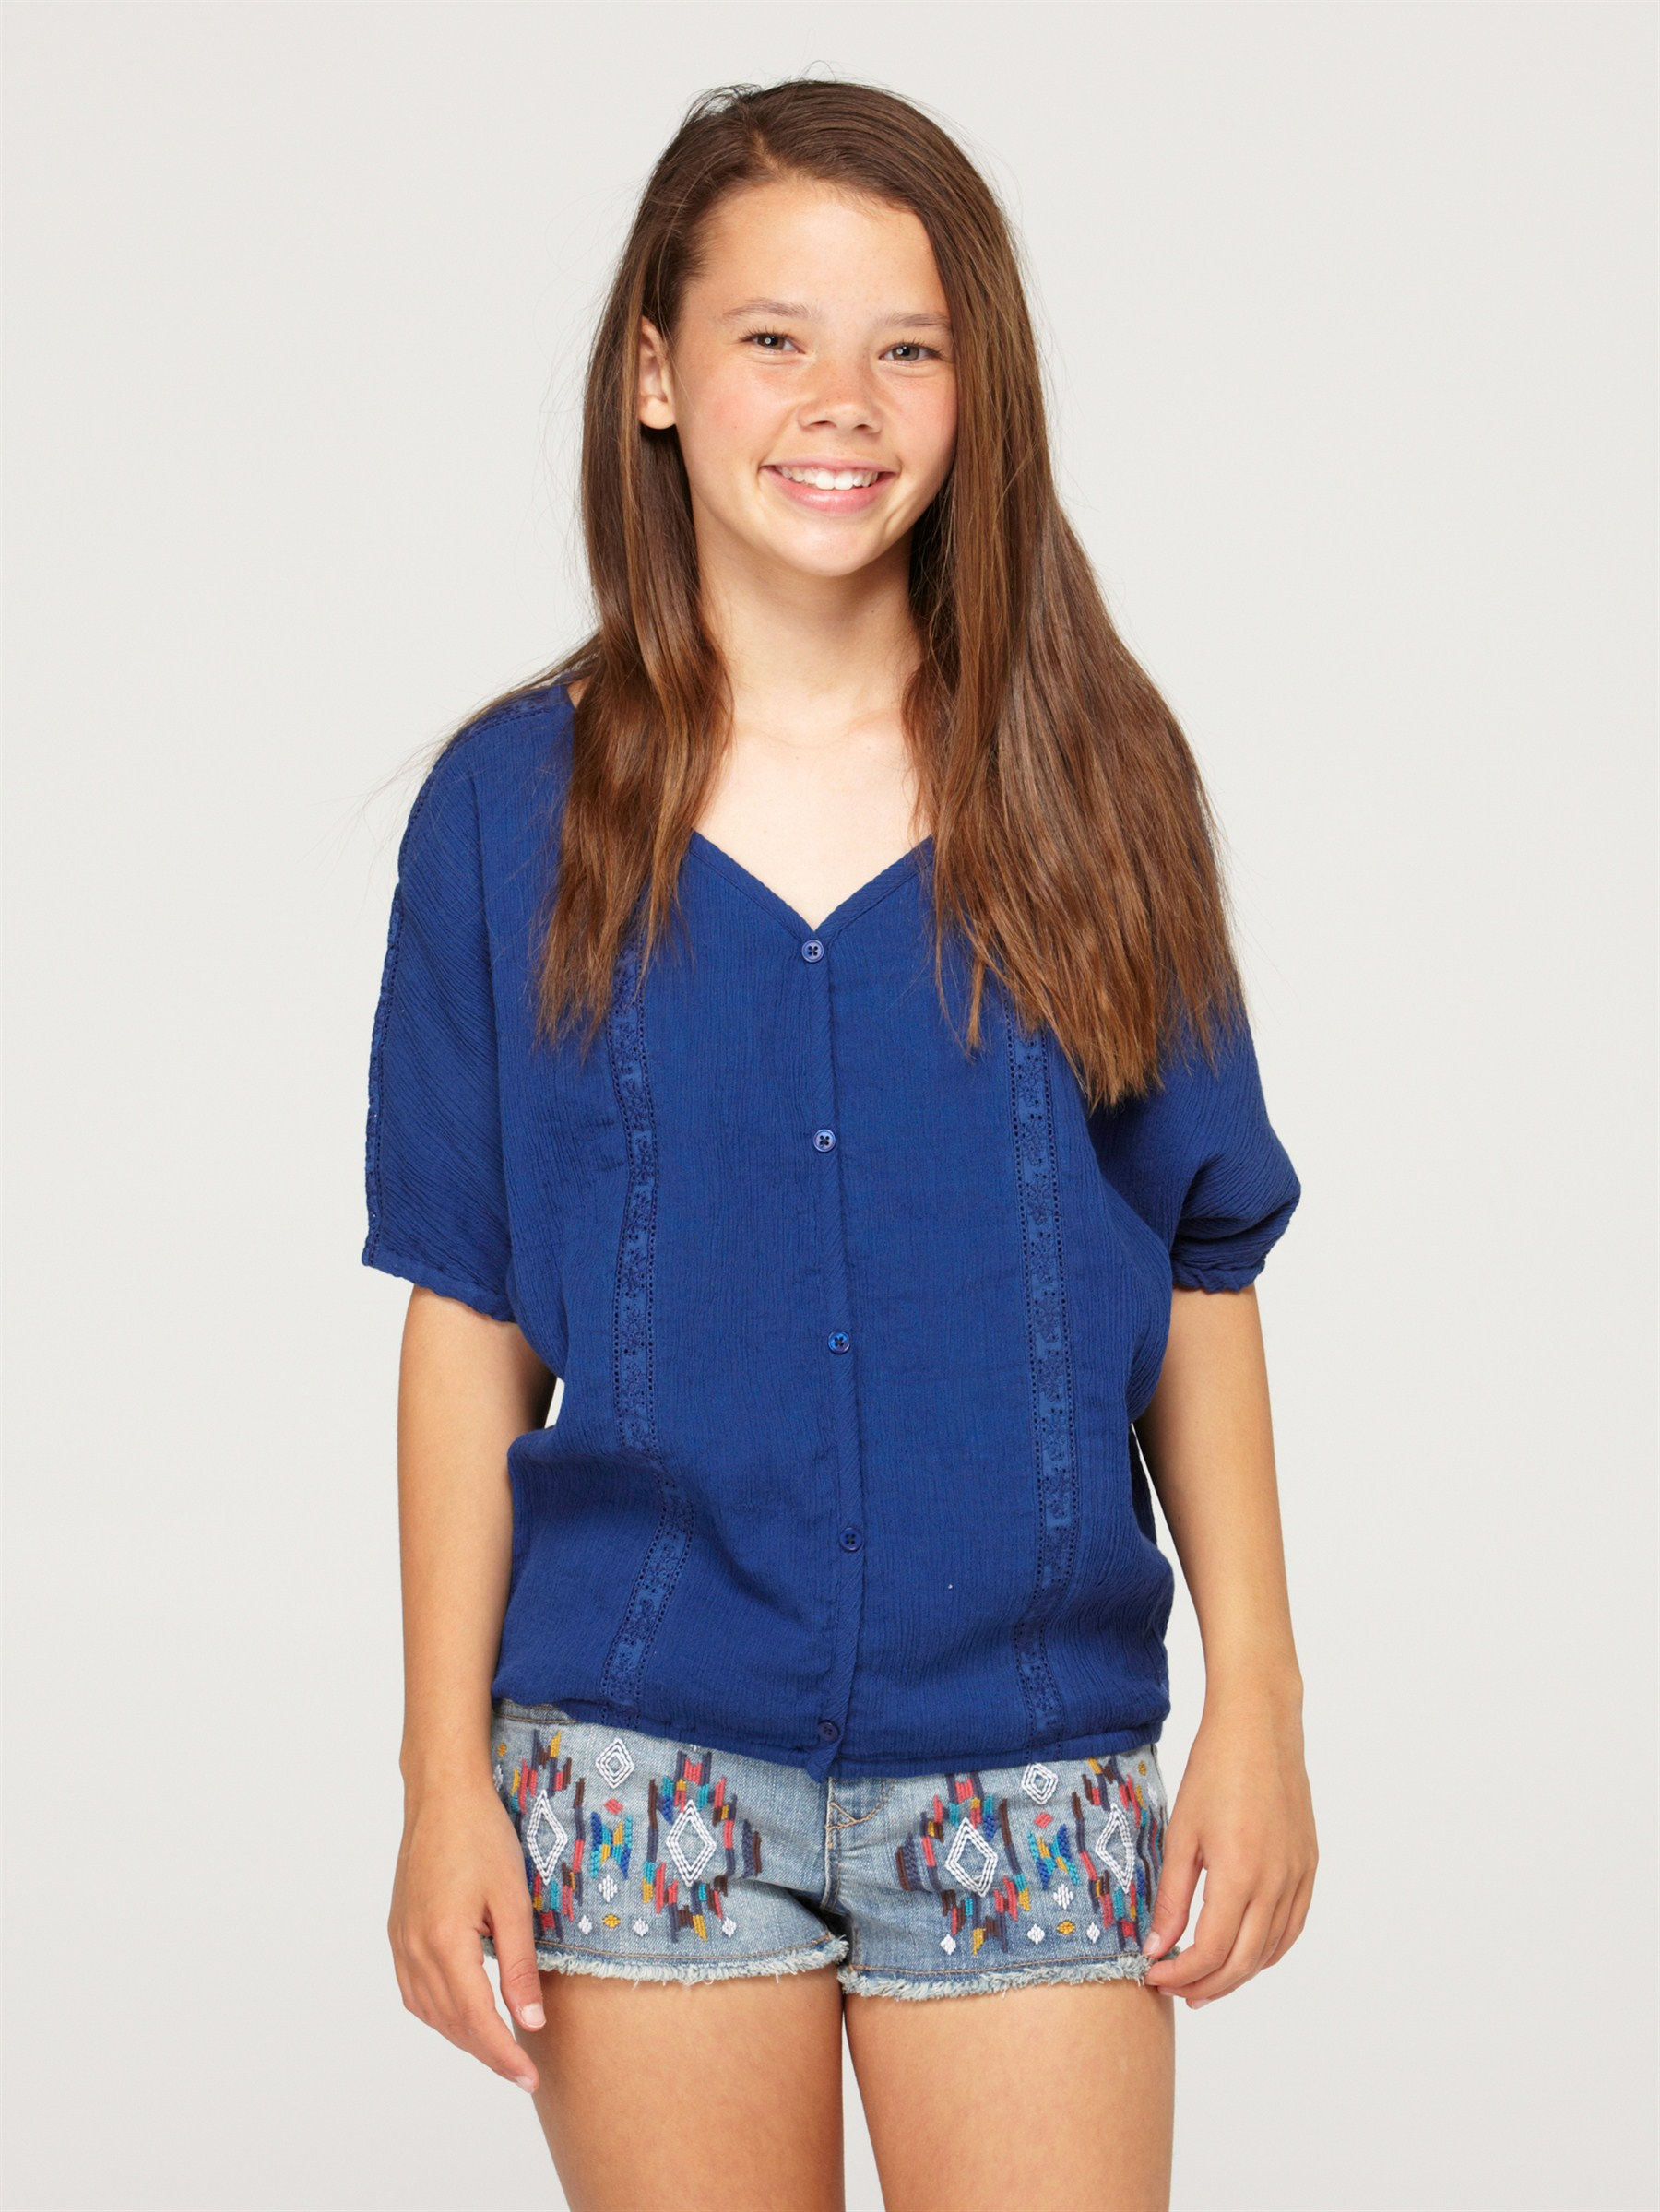 Shop girls clothes and children's clothing at the official online store of Roxy. We have all sizes, colors and styles for kids. Everyday Free Shipping.